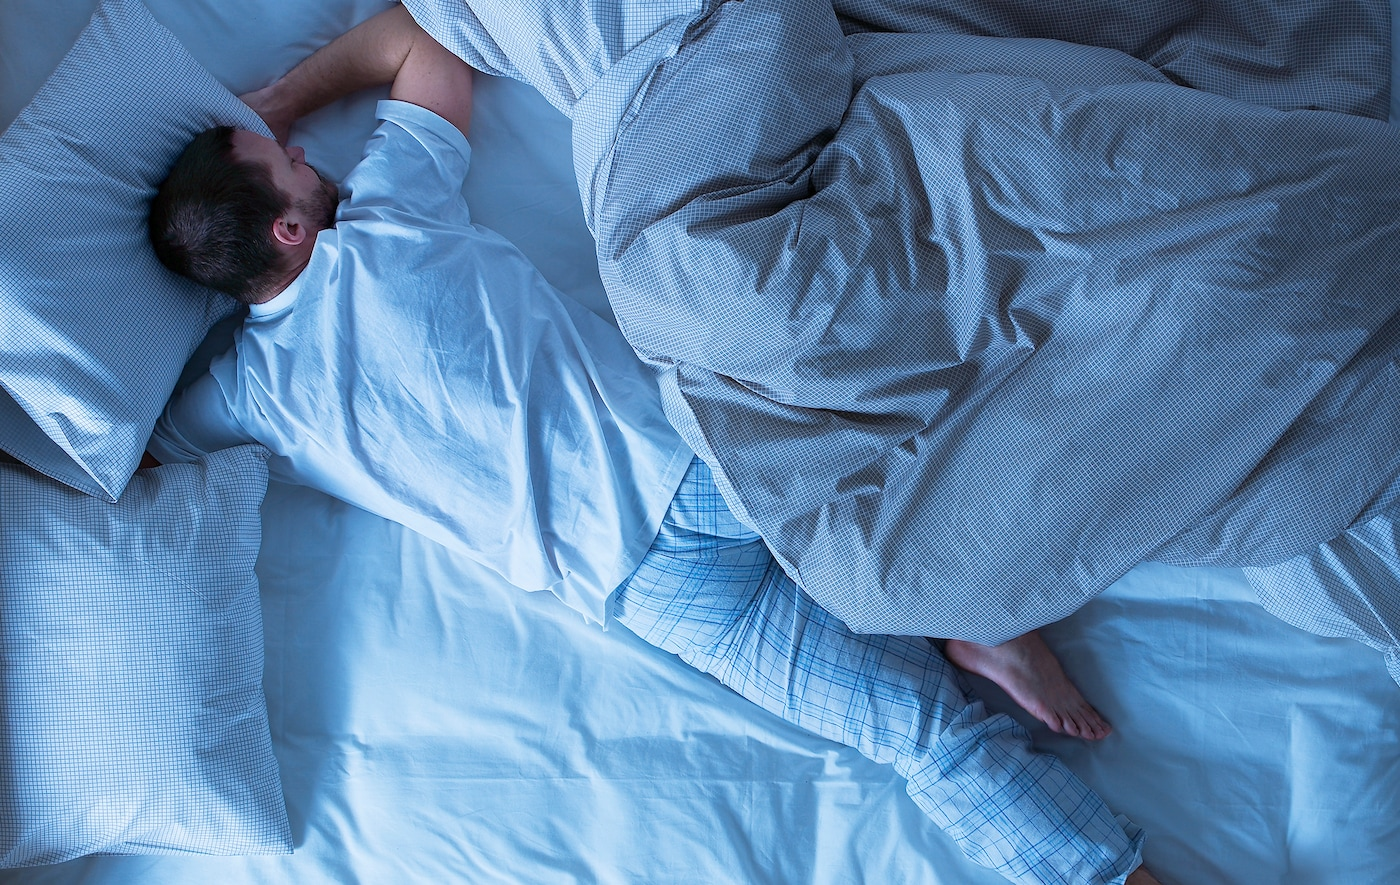 A man asleep with a duvet cover pushed to one side.